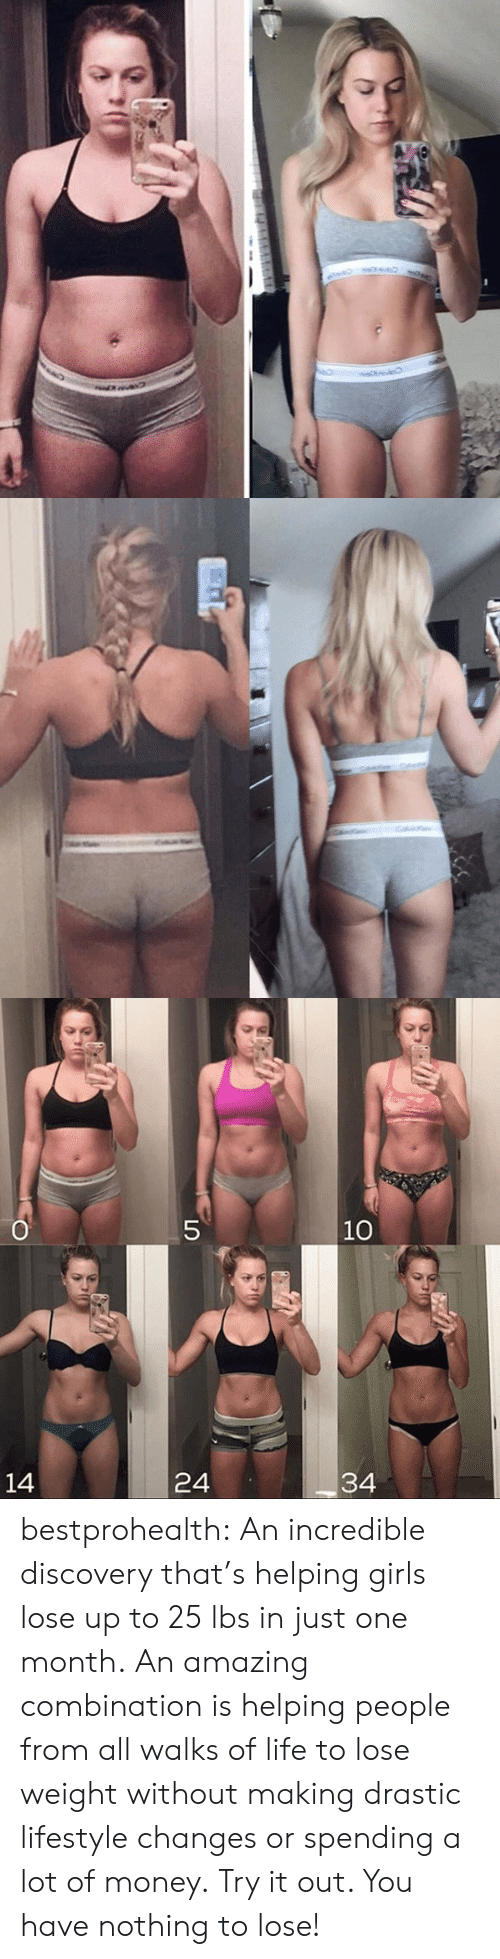 combination: O  5  10  34  24  14 bestprohealth:  An incredible discovery that'shelping girls lose up to 25 lbs in just one month. An amazing combination is helping people from all walks of life to lose weight without making drastic lifestyle changes or spending a lot of money. Try it out. You have nothing to lose!